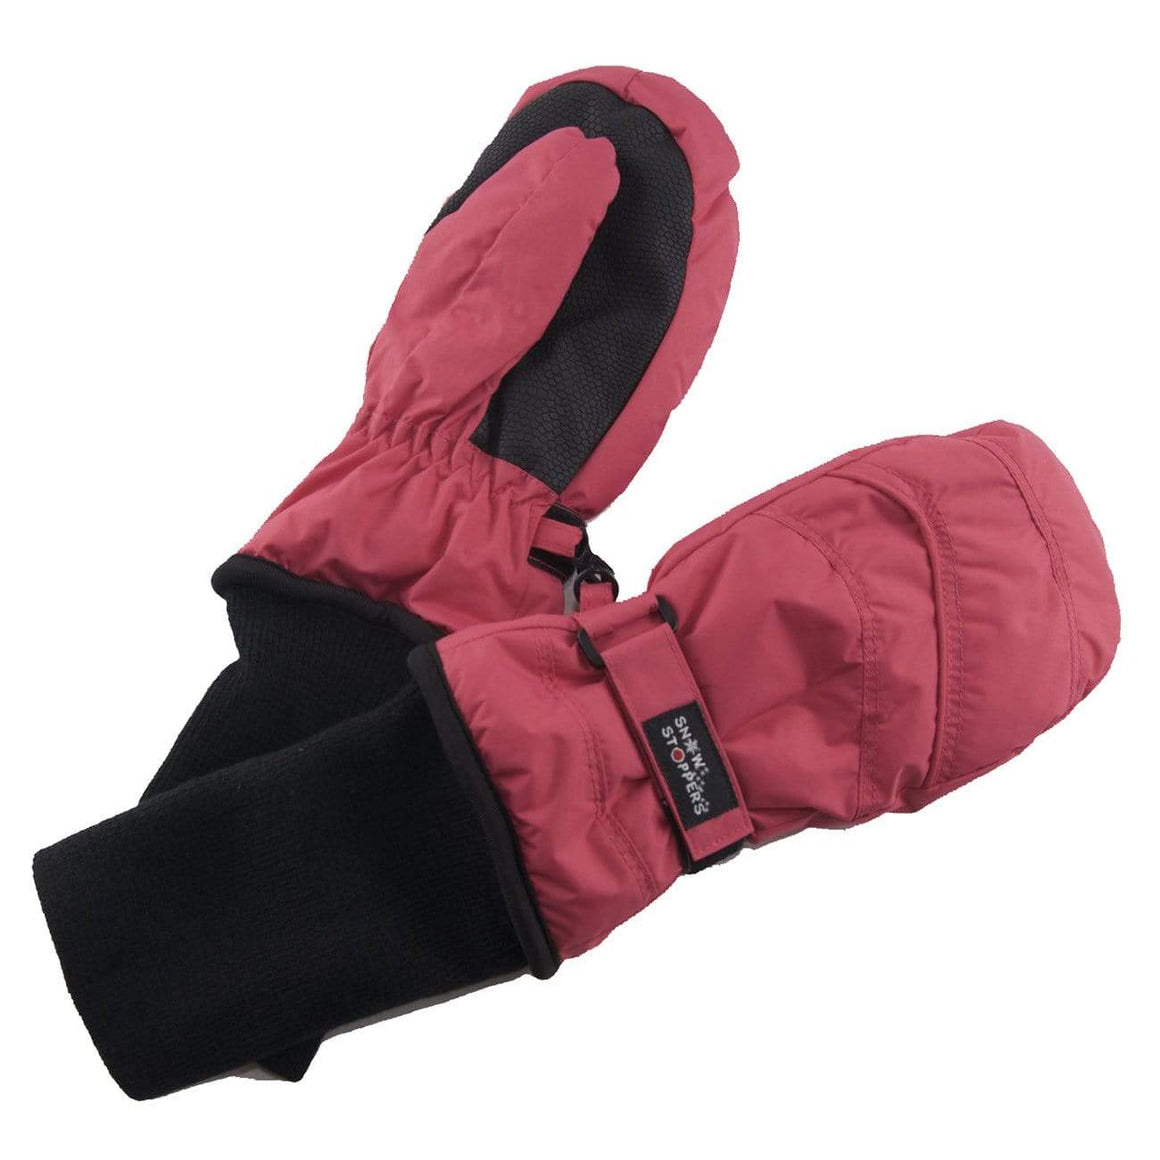 Snowstoppers Kids Stay-On Waterproof Mittens - Fuchsia Mittens Snow Stoppers